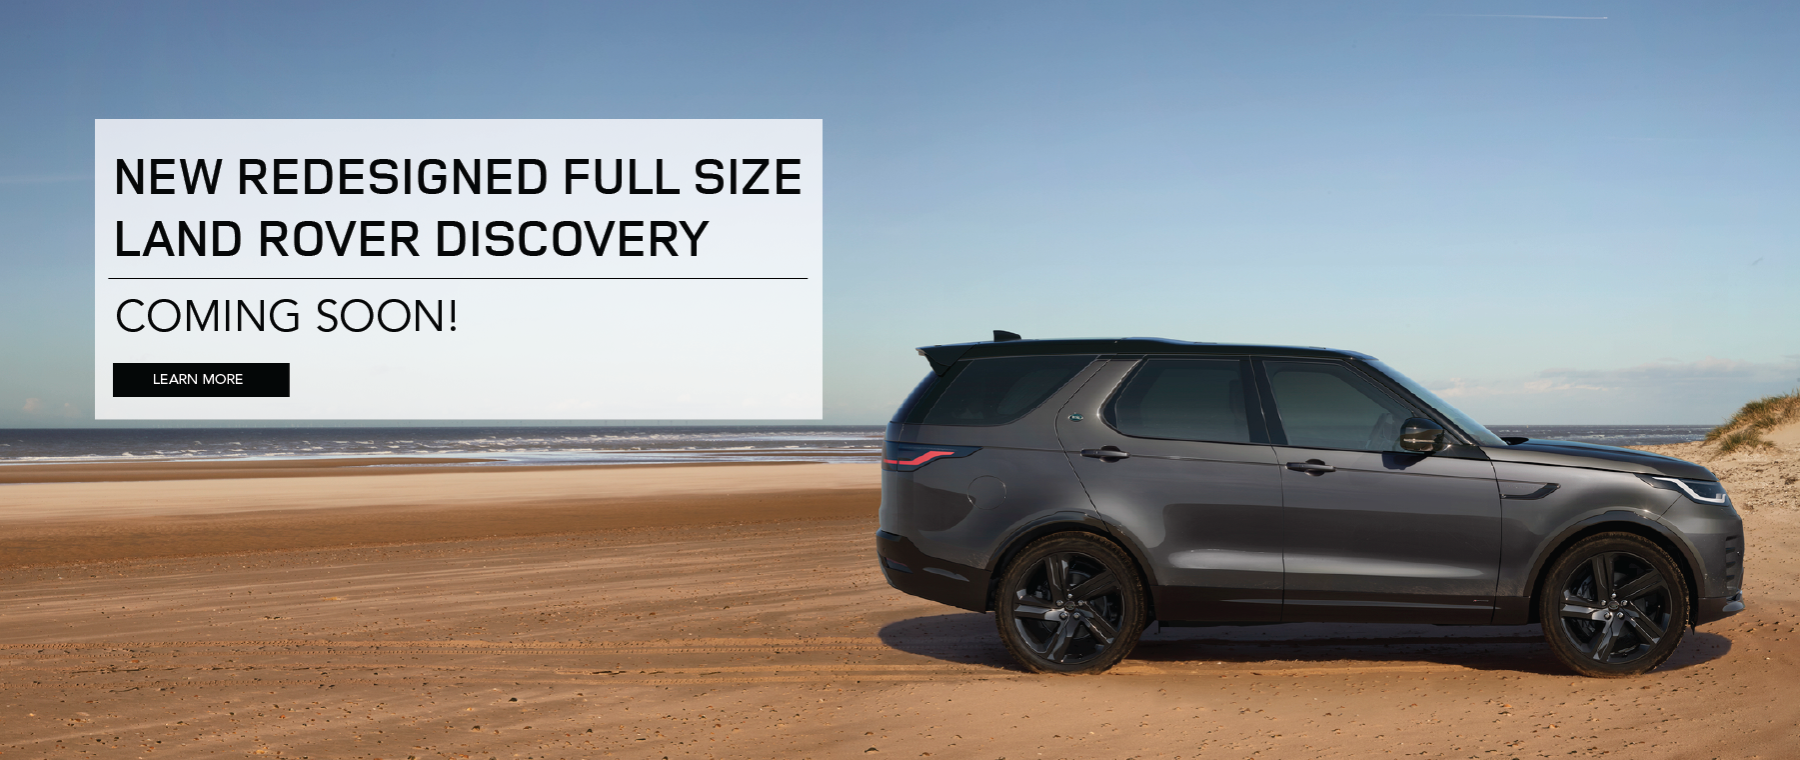 Black 2021 Land Rover Discovery on on beach near water. Click to learn more.